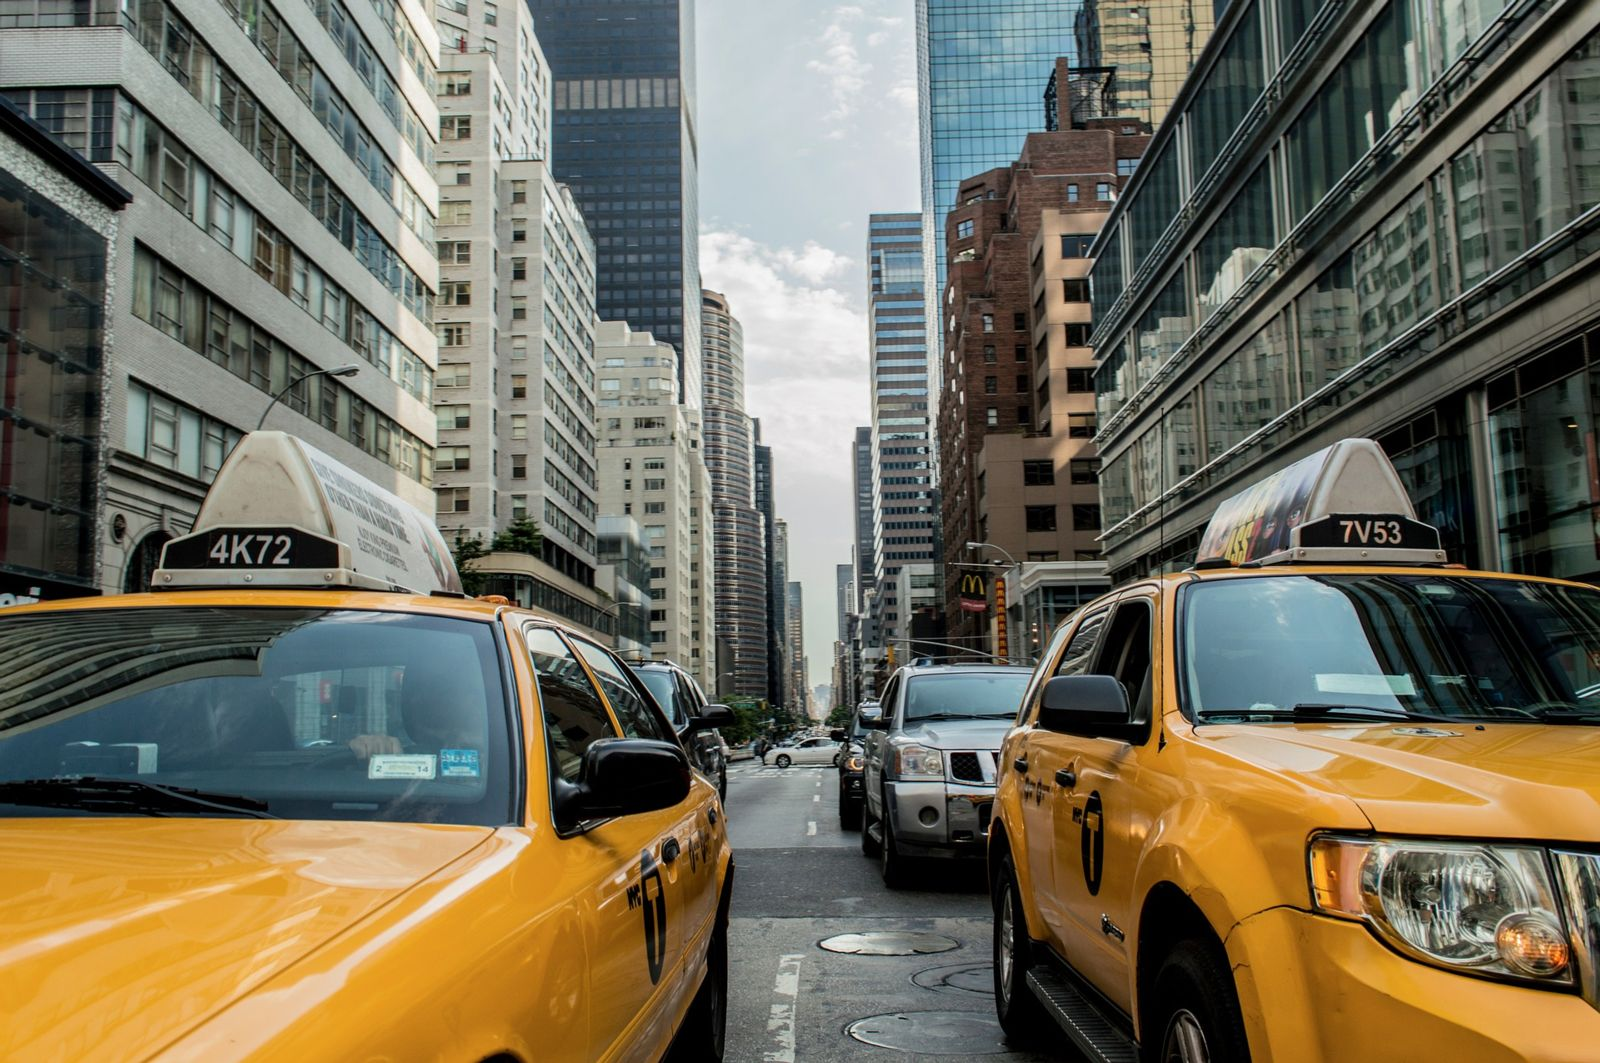 Taxi Cab Daytime